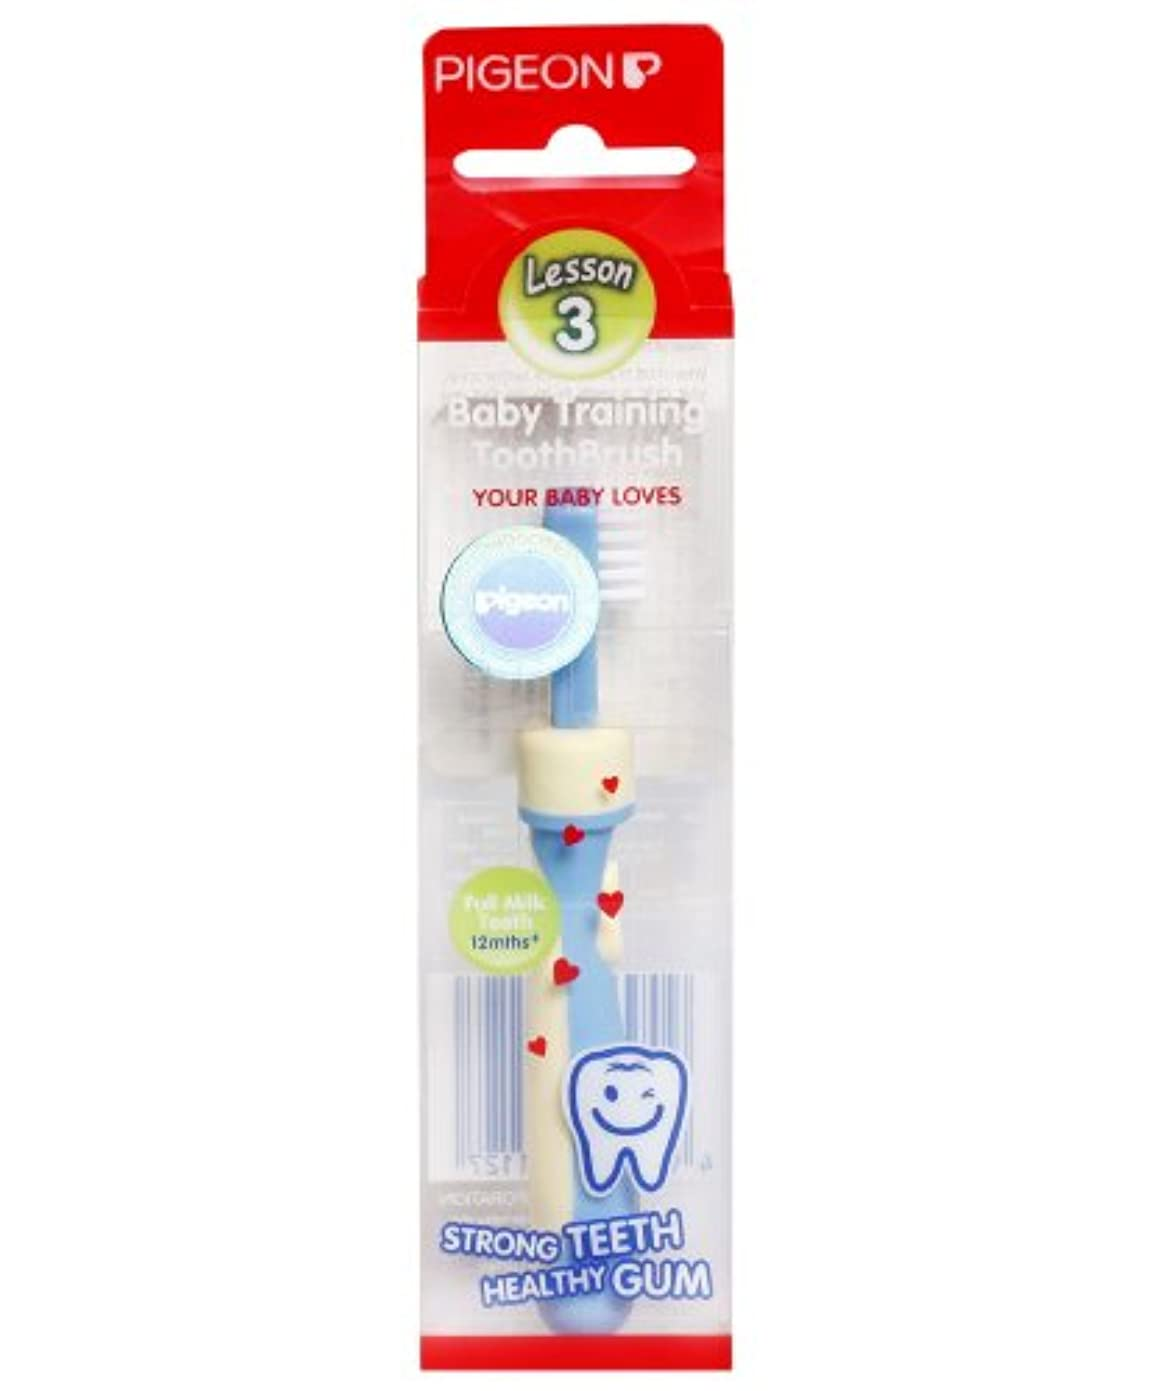 小康公爵夫人その後Pigeon Baby Training Toothbrush Lesson 3 Blue 12 months+ by Pigeon